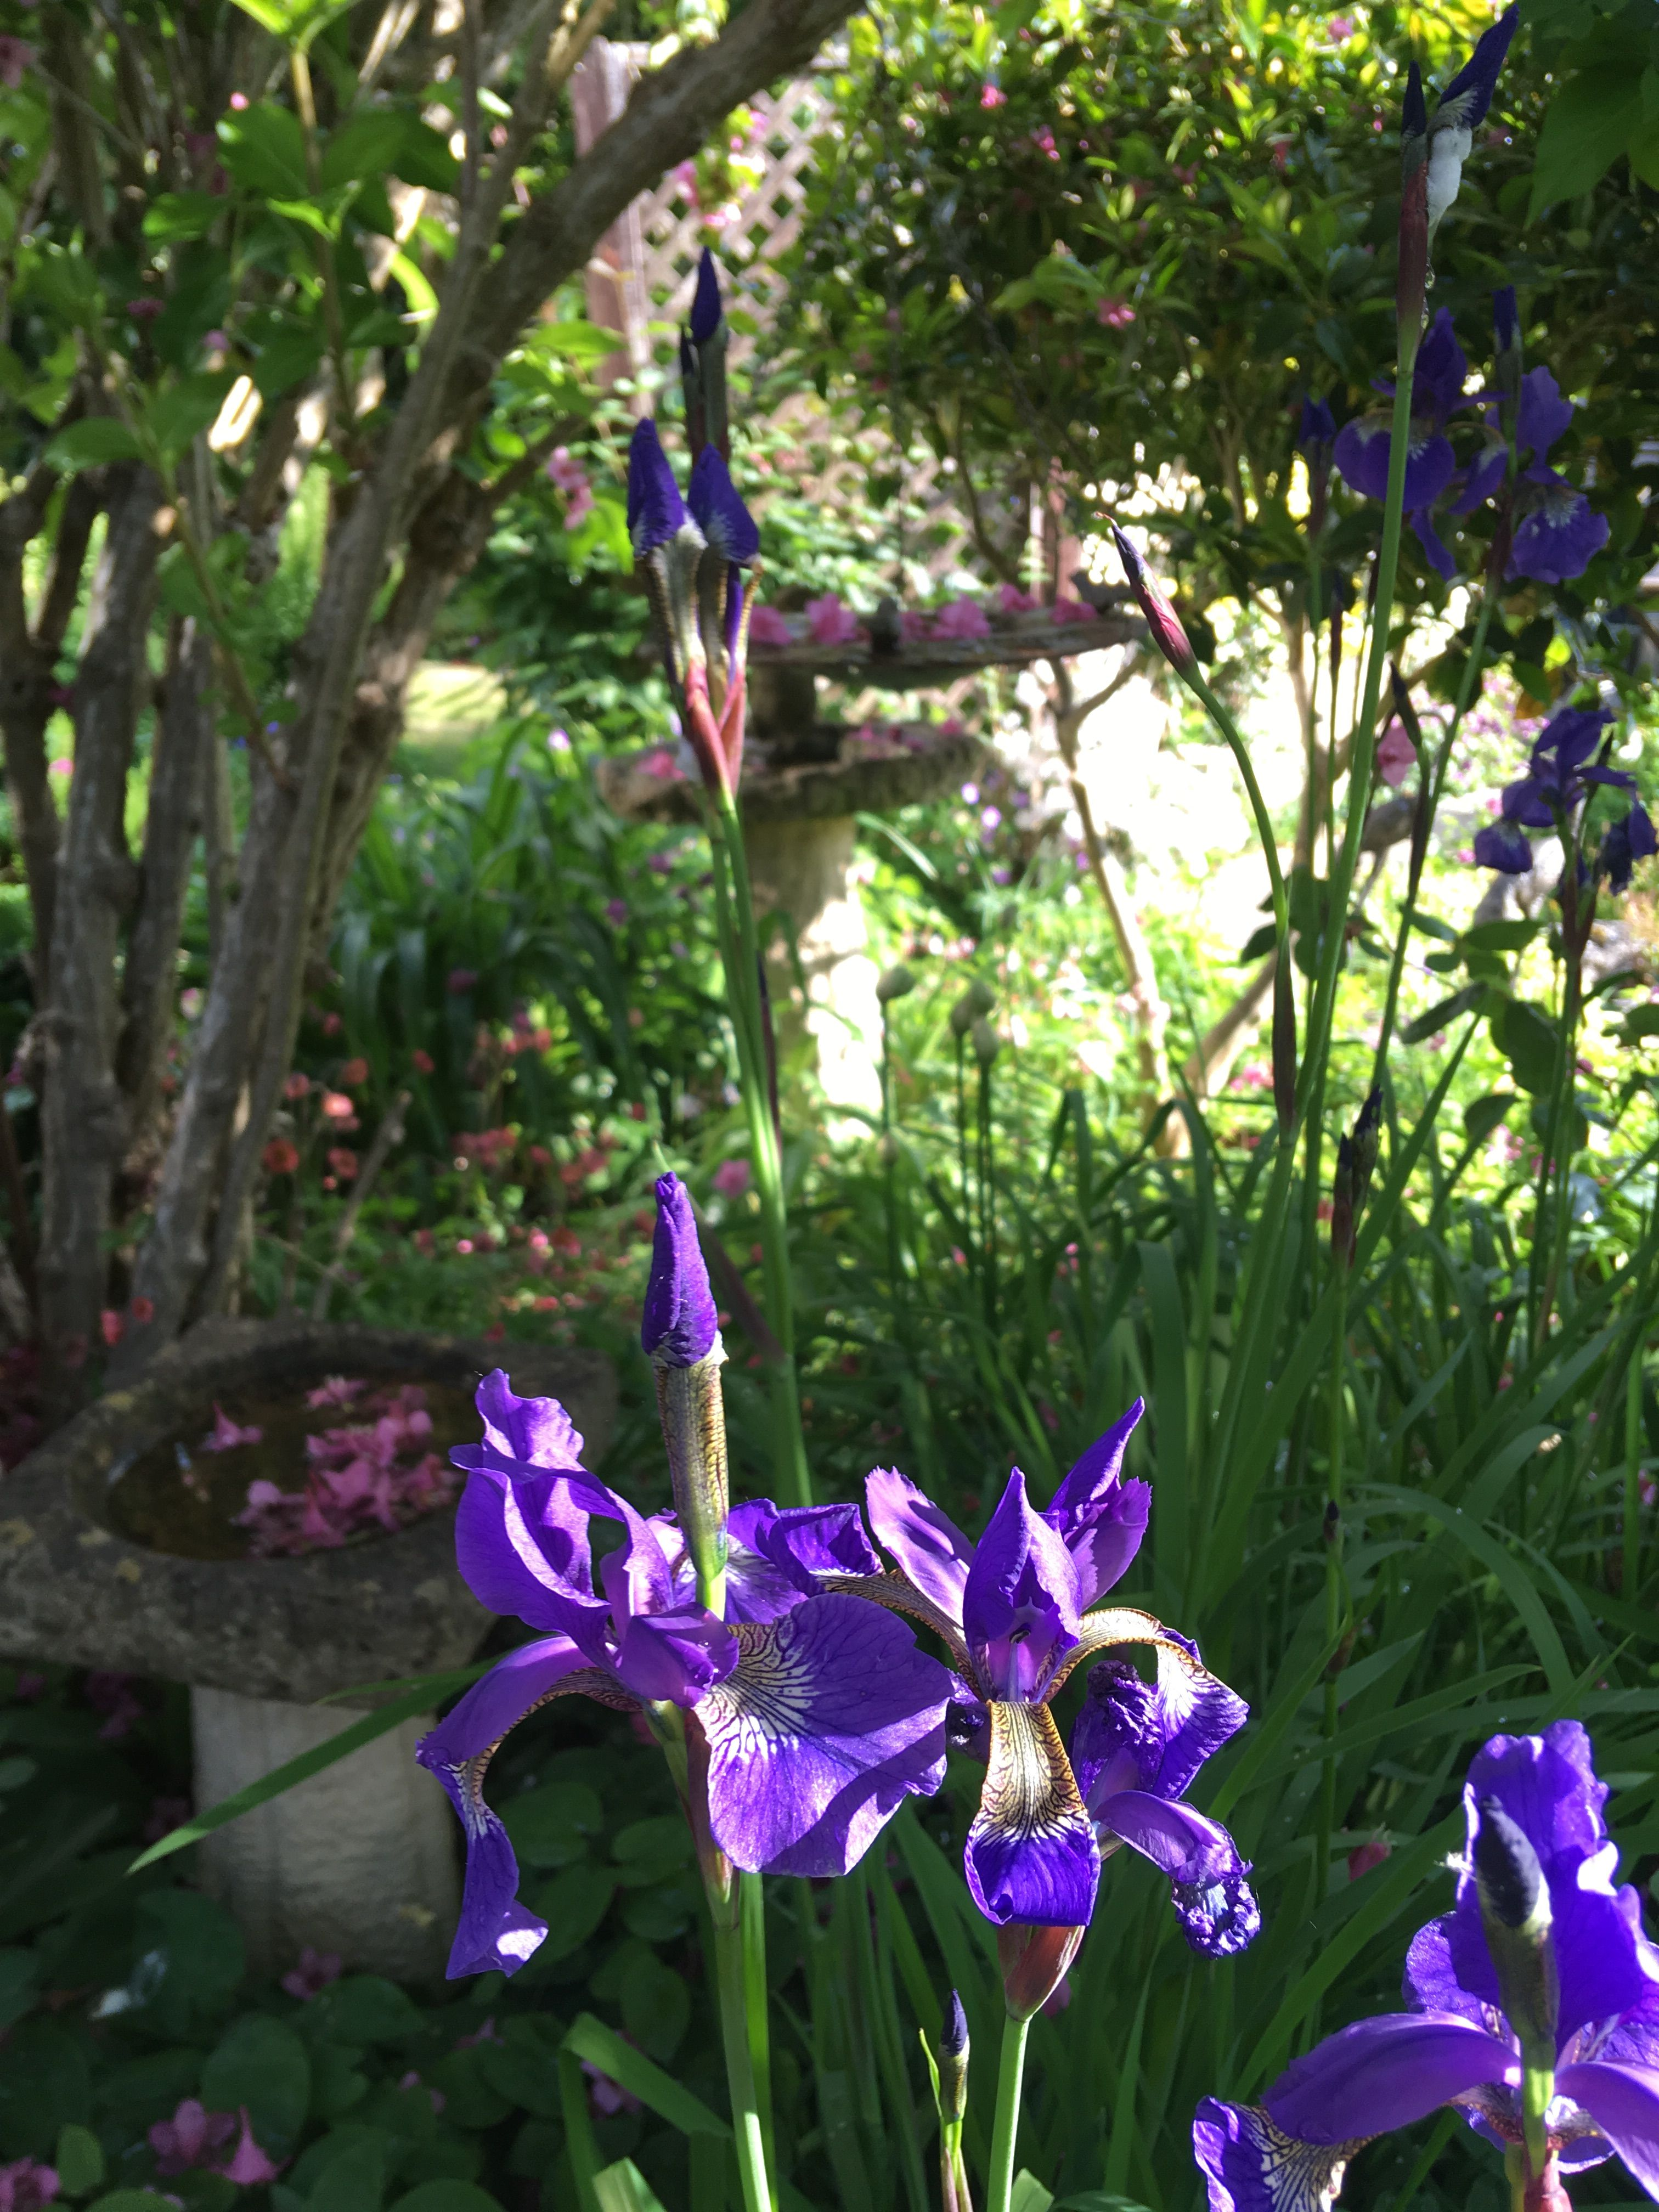 Iris Sibirica Showy Flowers Horticulture Plants